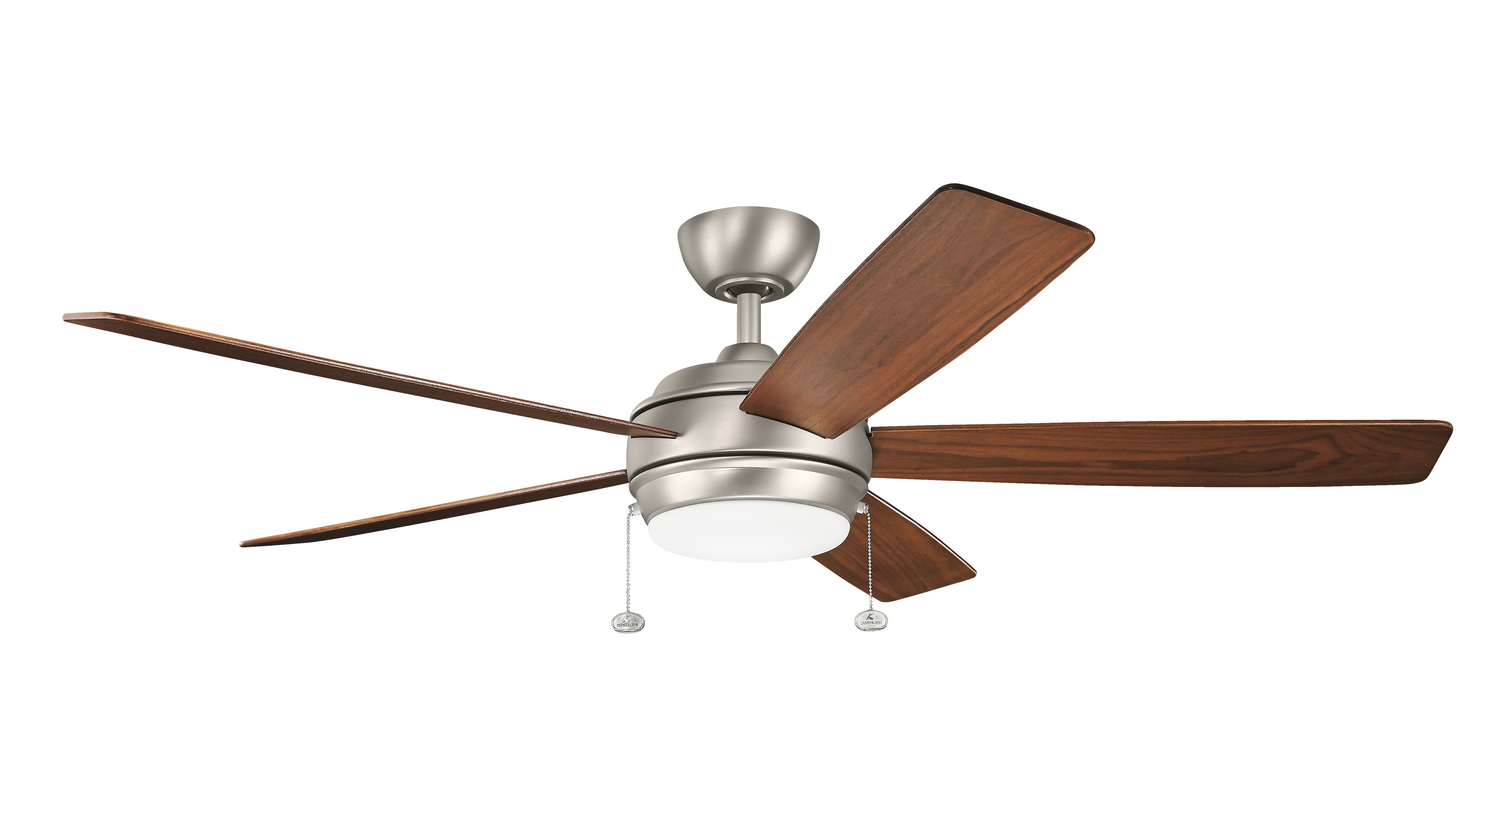 60 inchCeiling Fan from the Starkk collection by Kichler 330180NI